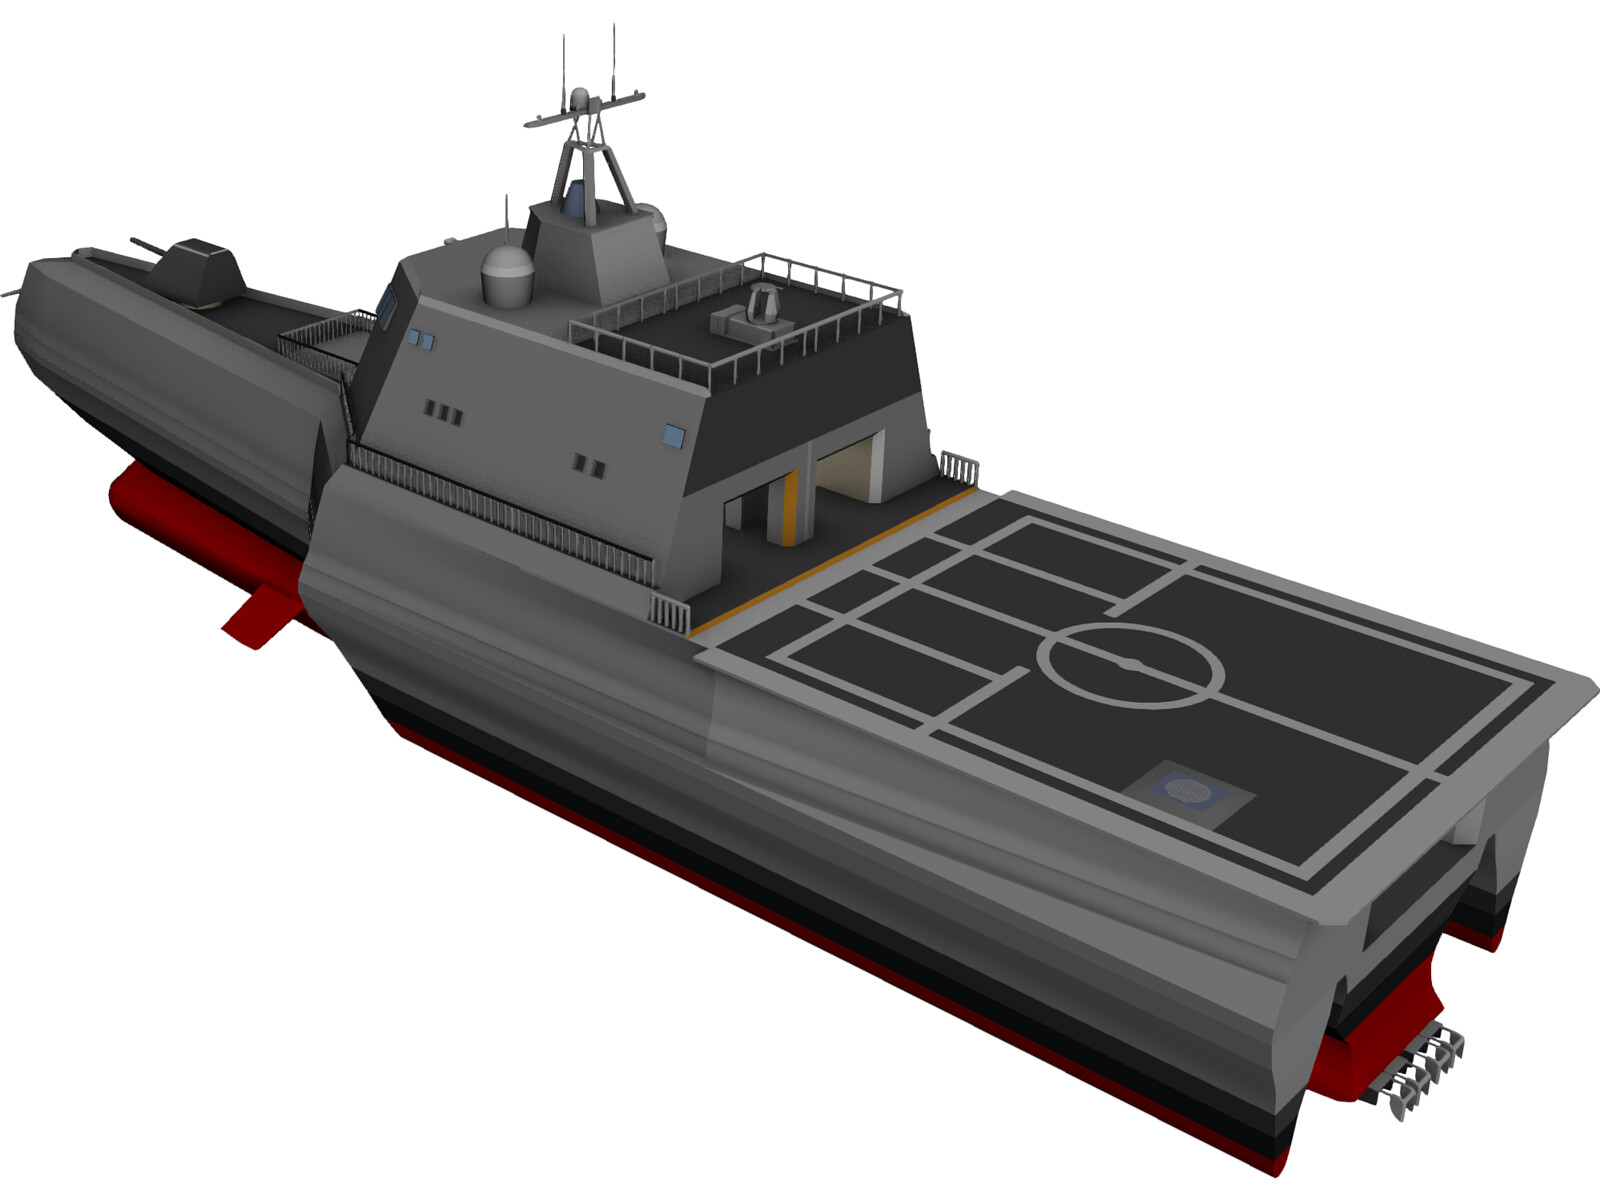 USS Independence (LCS-2) 3D CAD Model